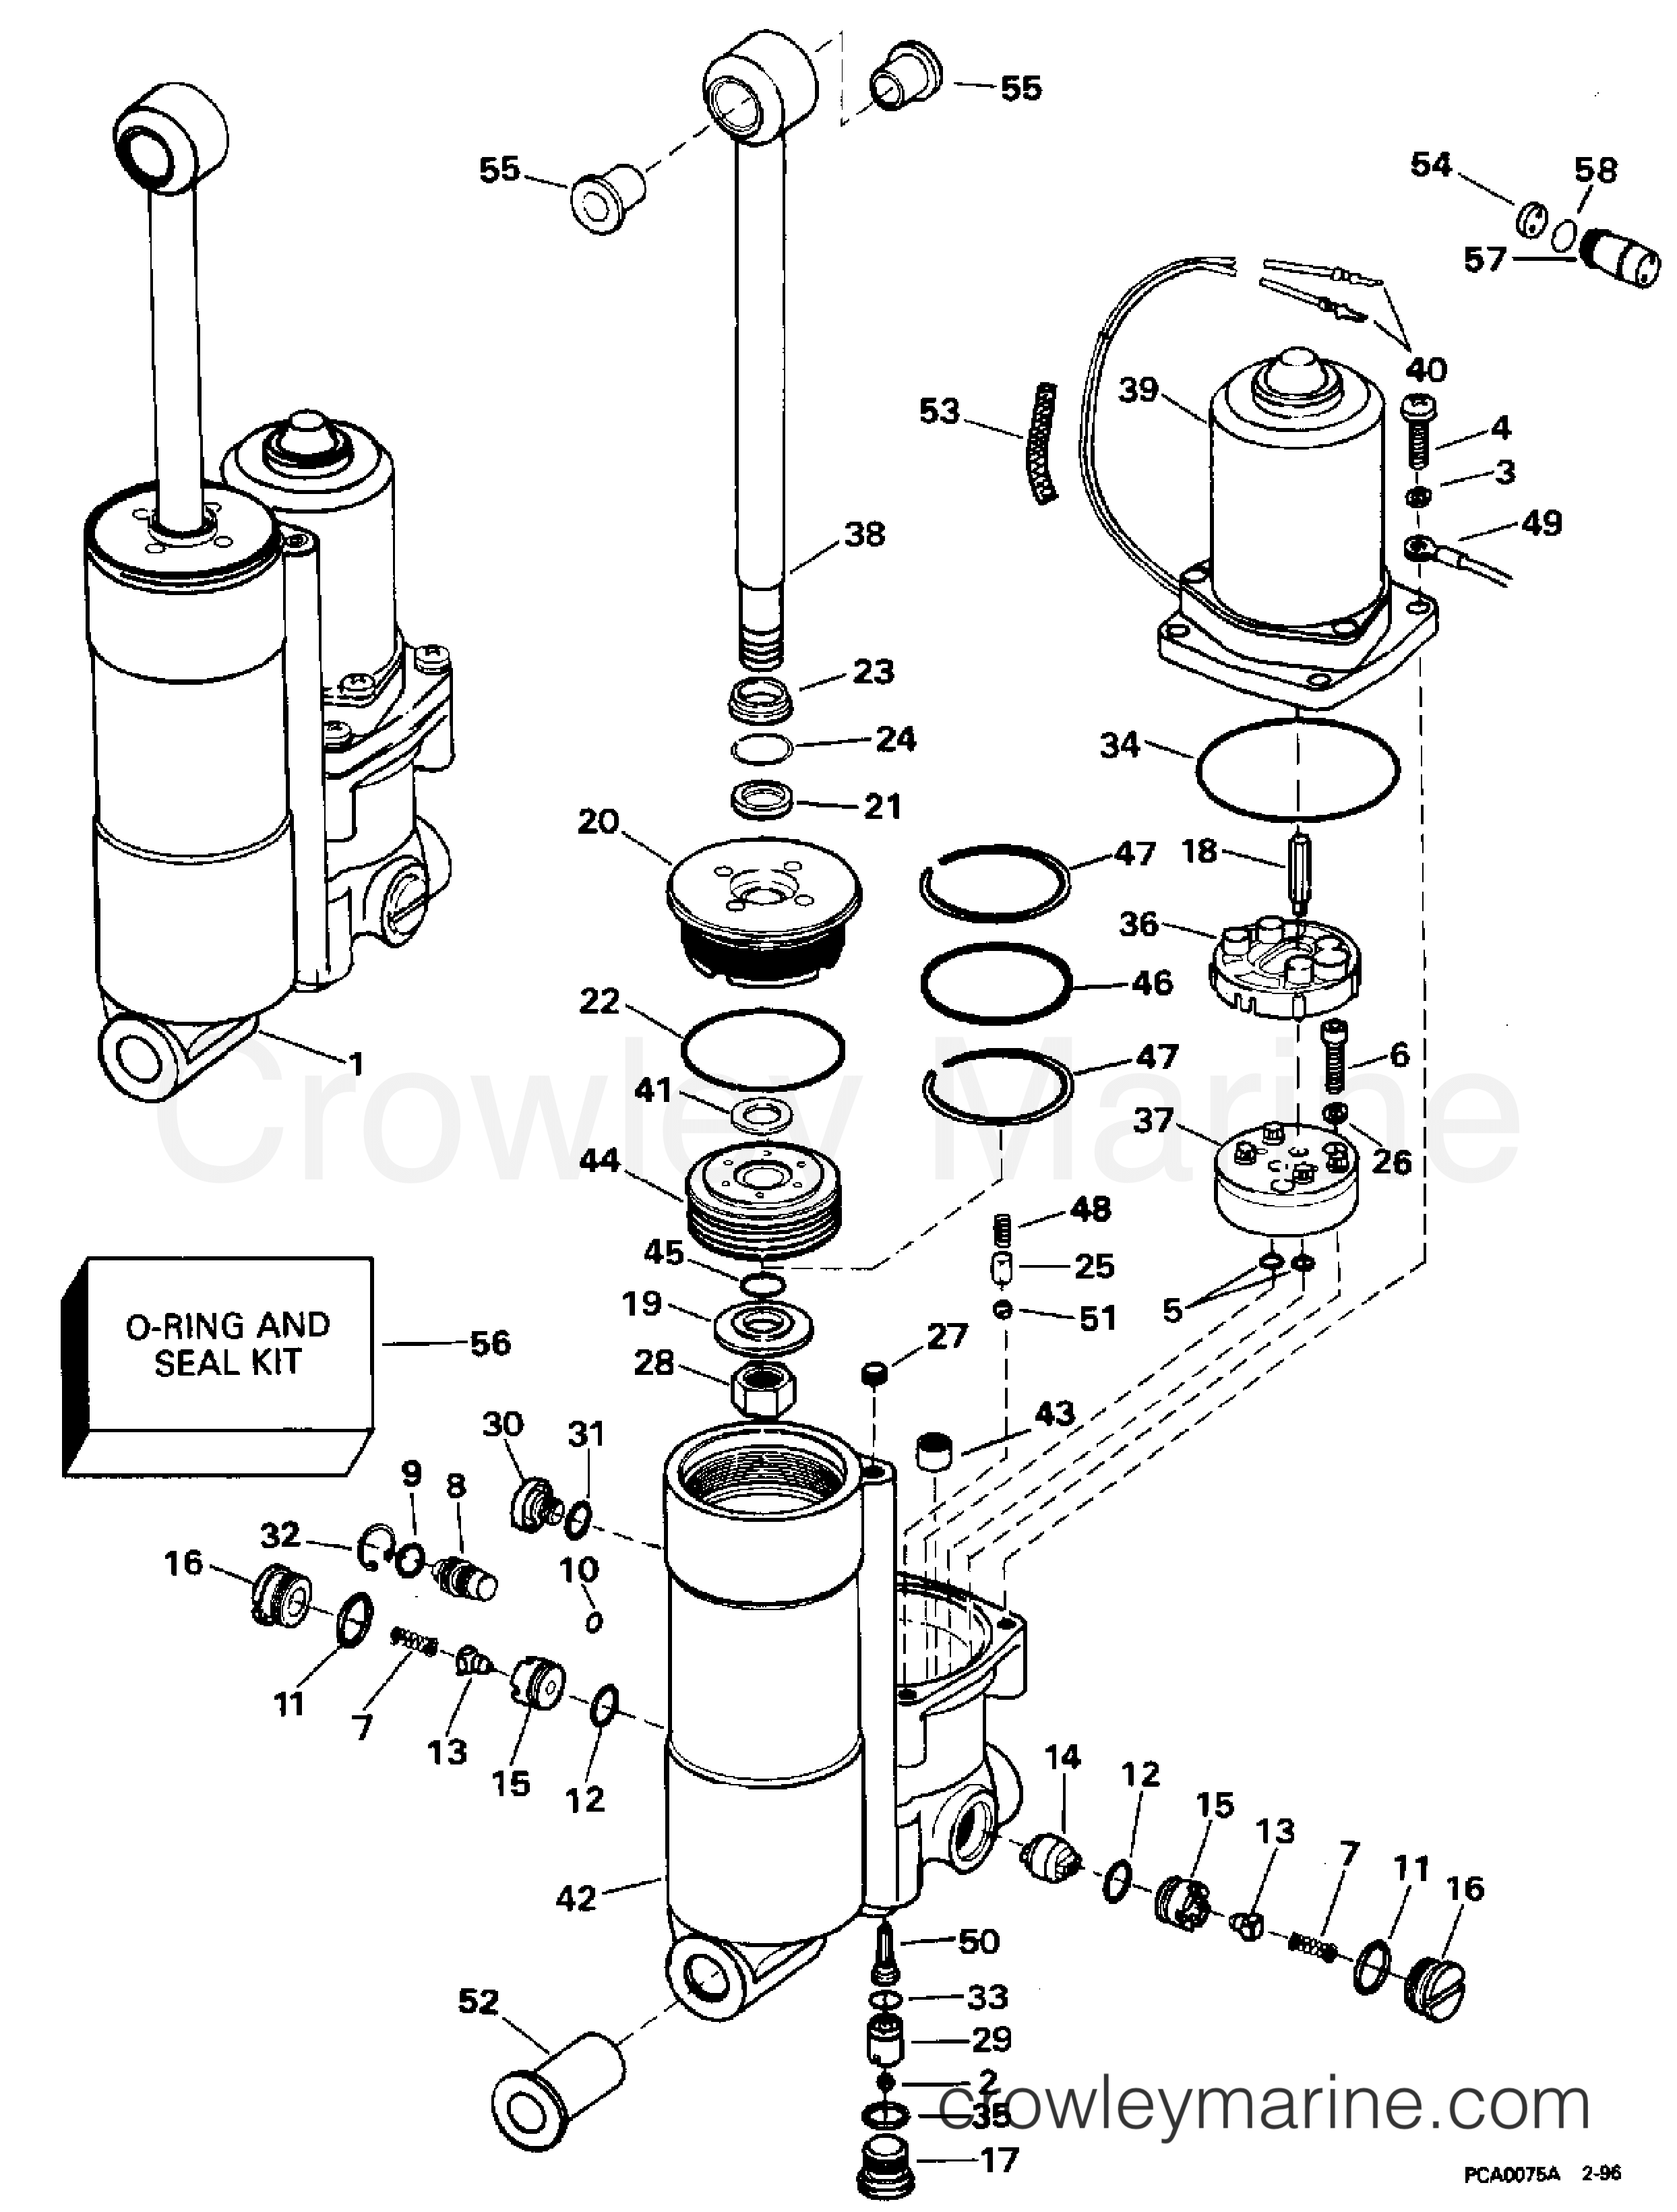 Yamaha Outboard Power Trim Wiring Diagram Apktodownload